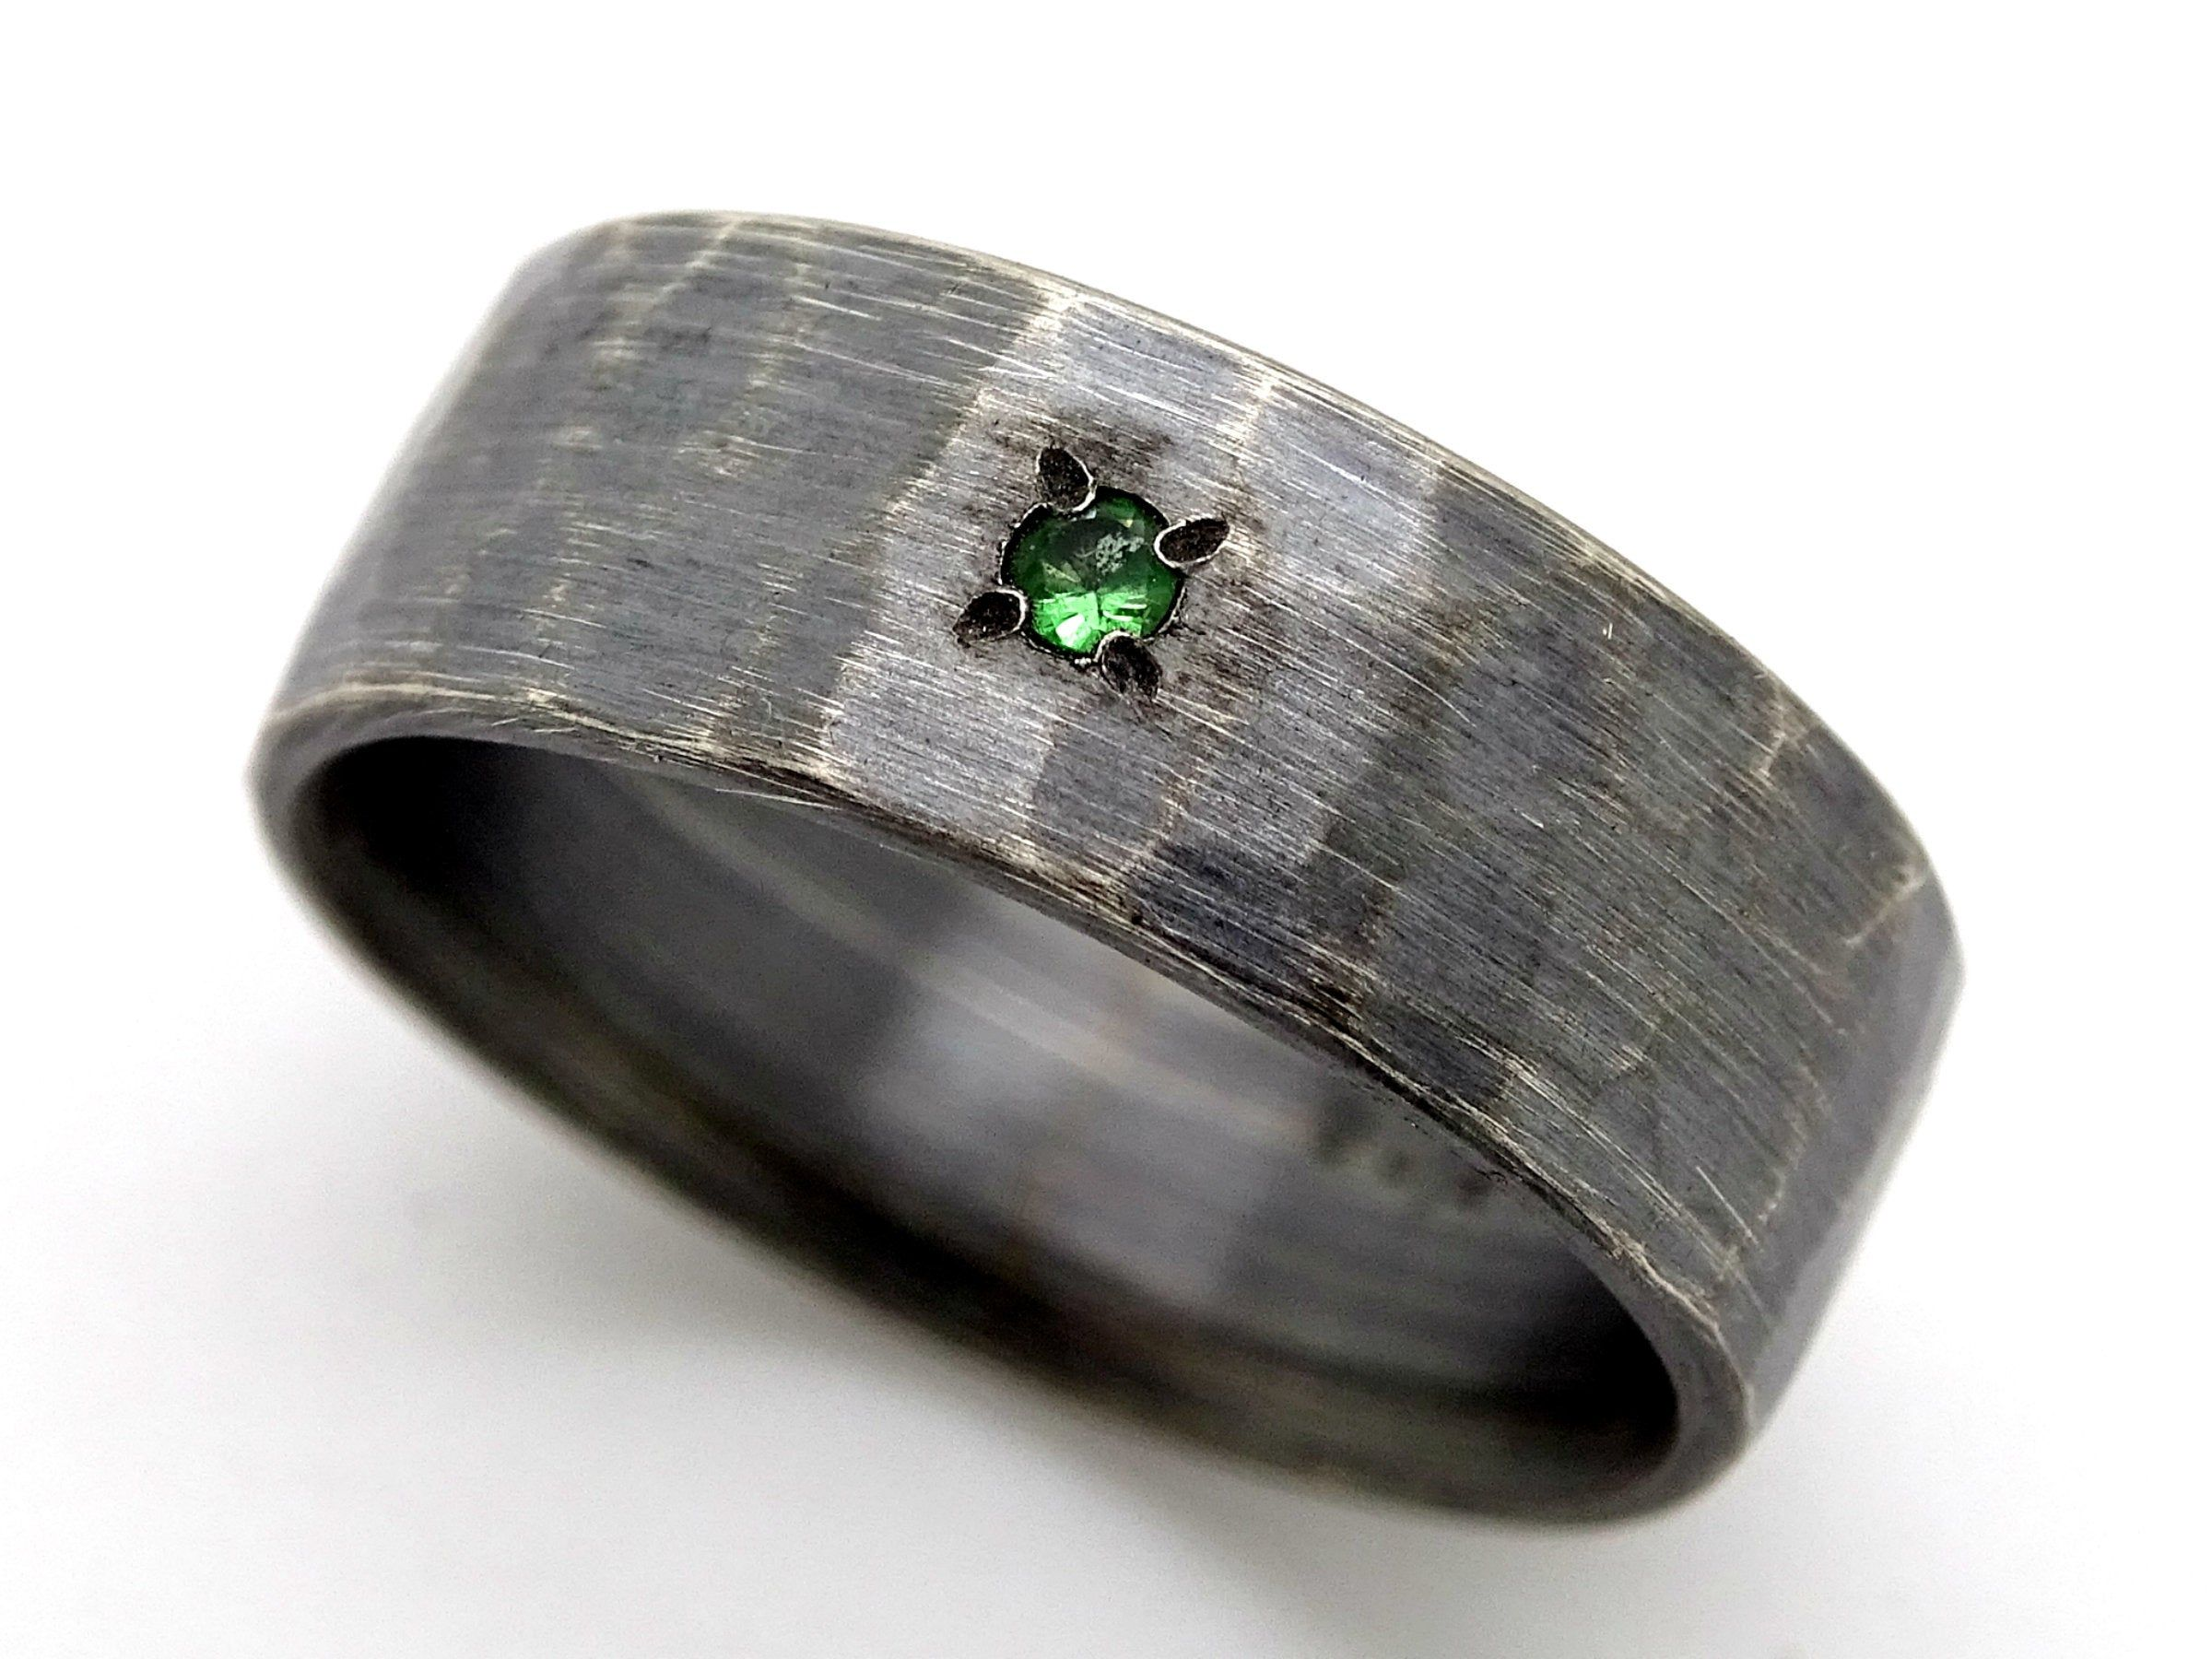 Rustic mens ring band rustic wedding ring silver promise